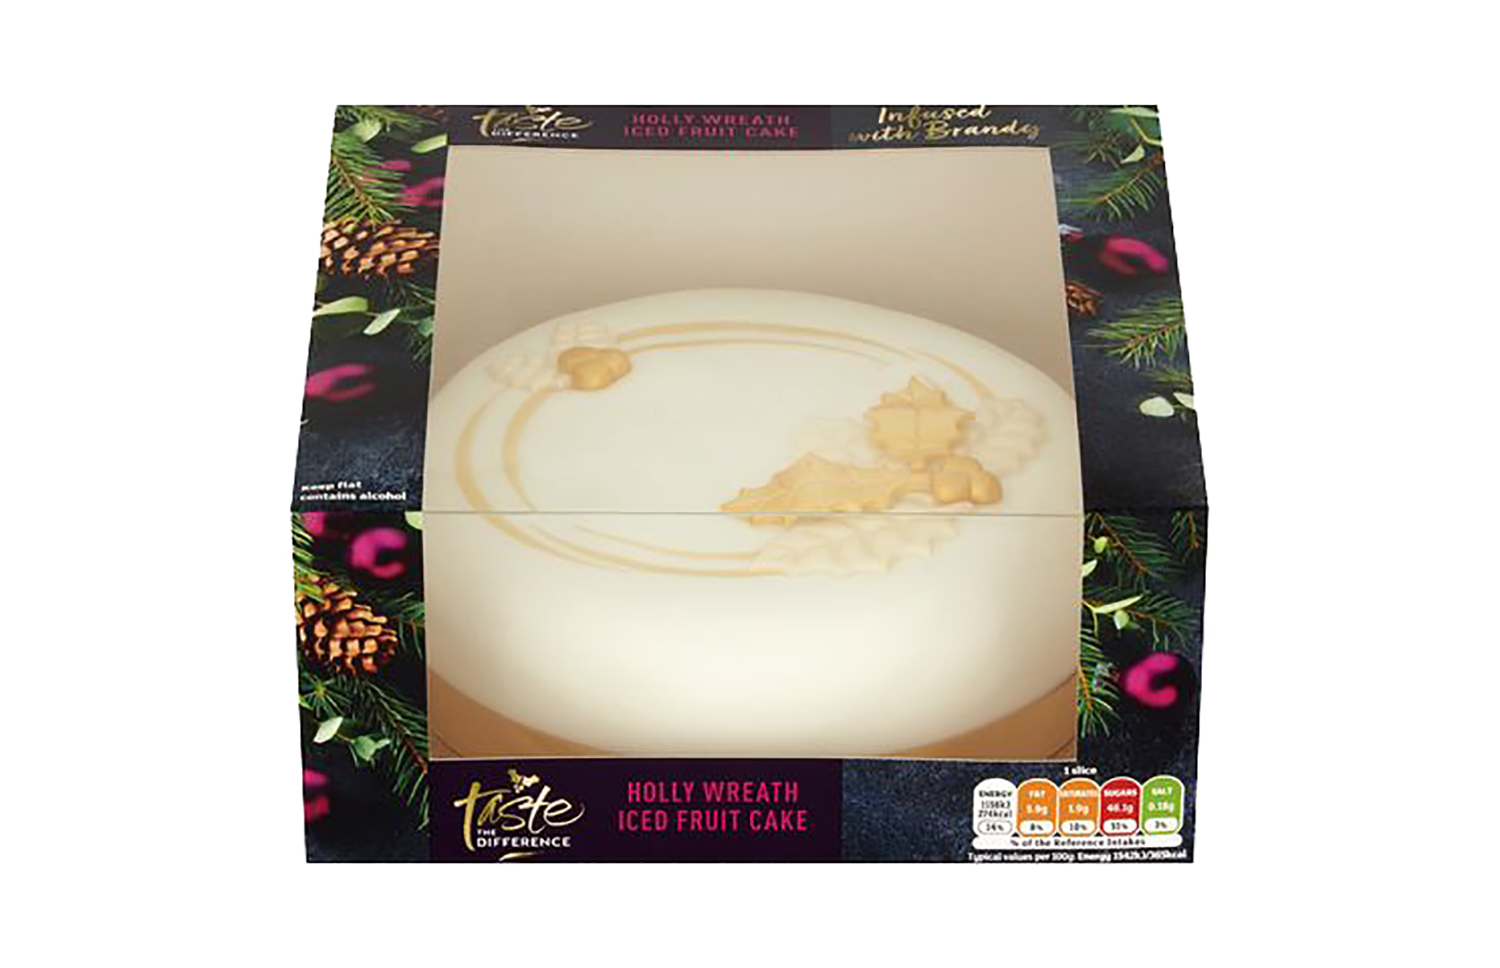 Sainsbury's Taste the Difference holly wreath iced fruit cake